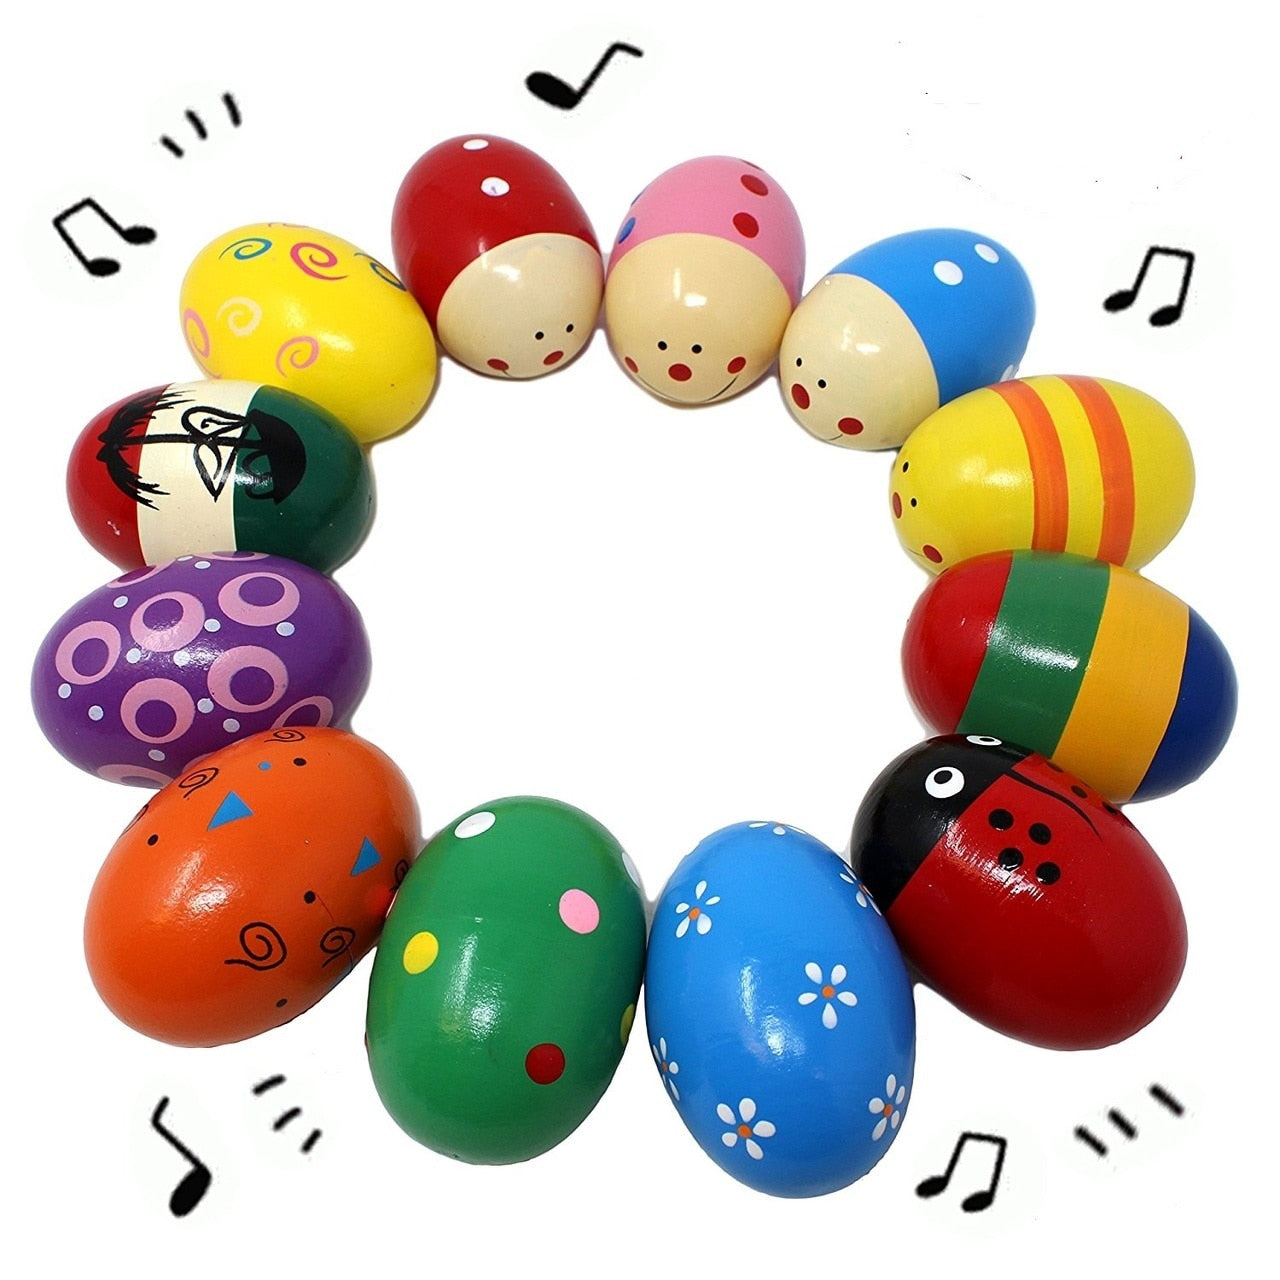 12 Pieces Wooden Eggs with Acoustic Sounds